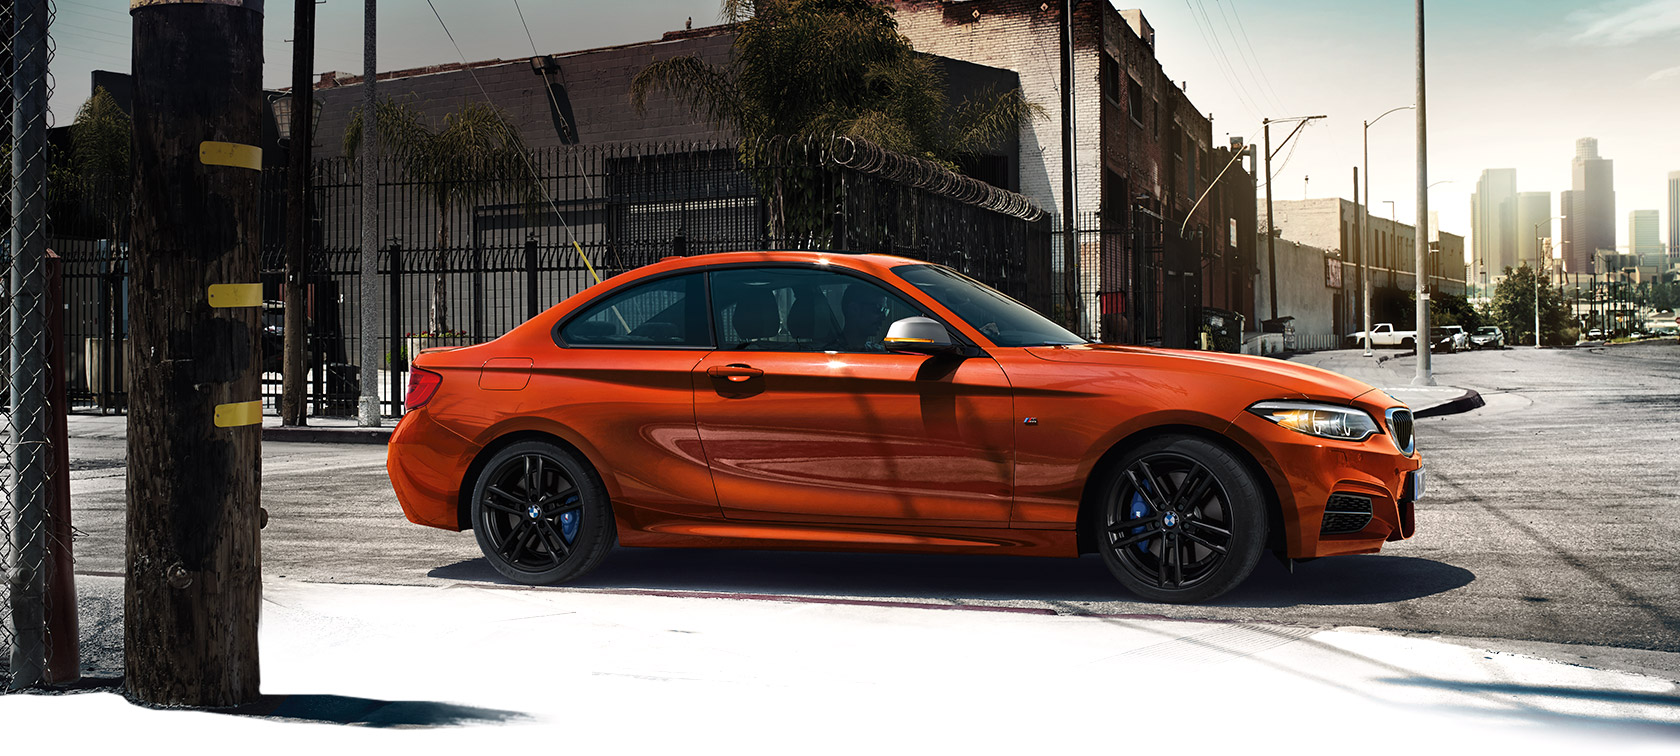 bmw 2 series coup design bmw south africa. Black Bedroom Furniture Sets. Home Design Ideas